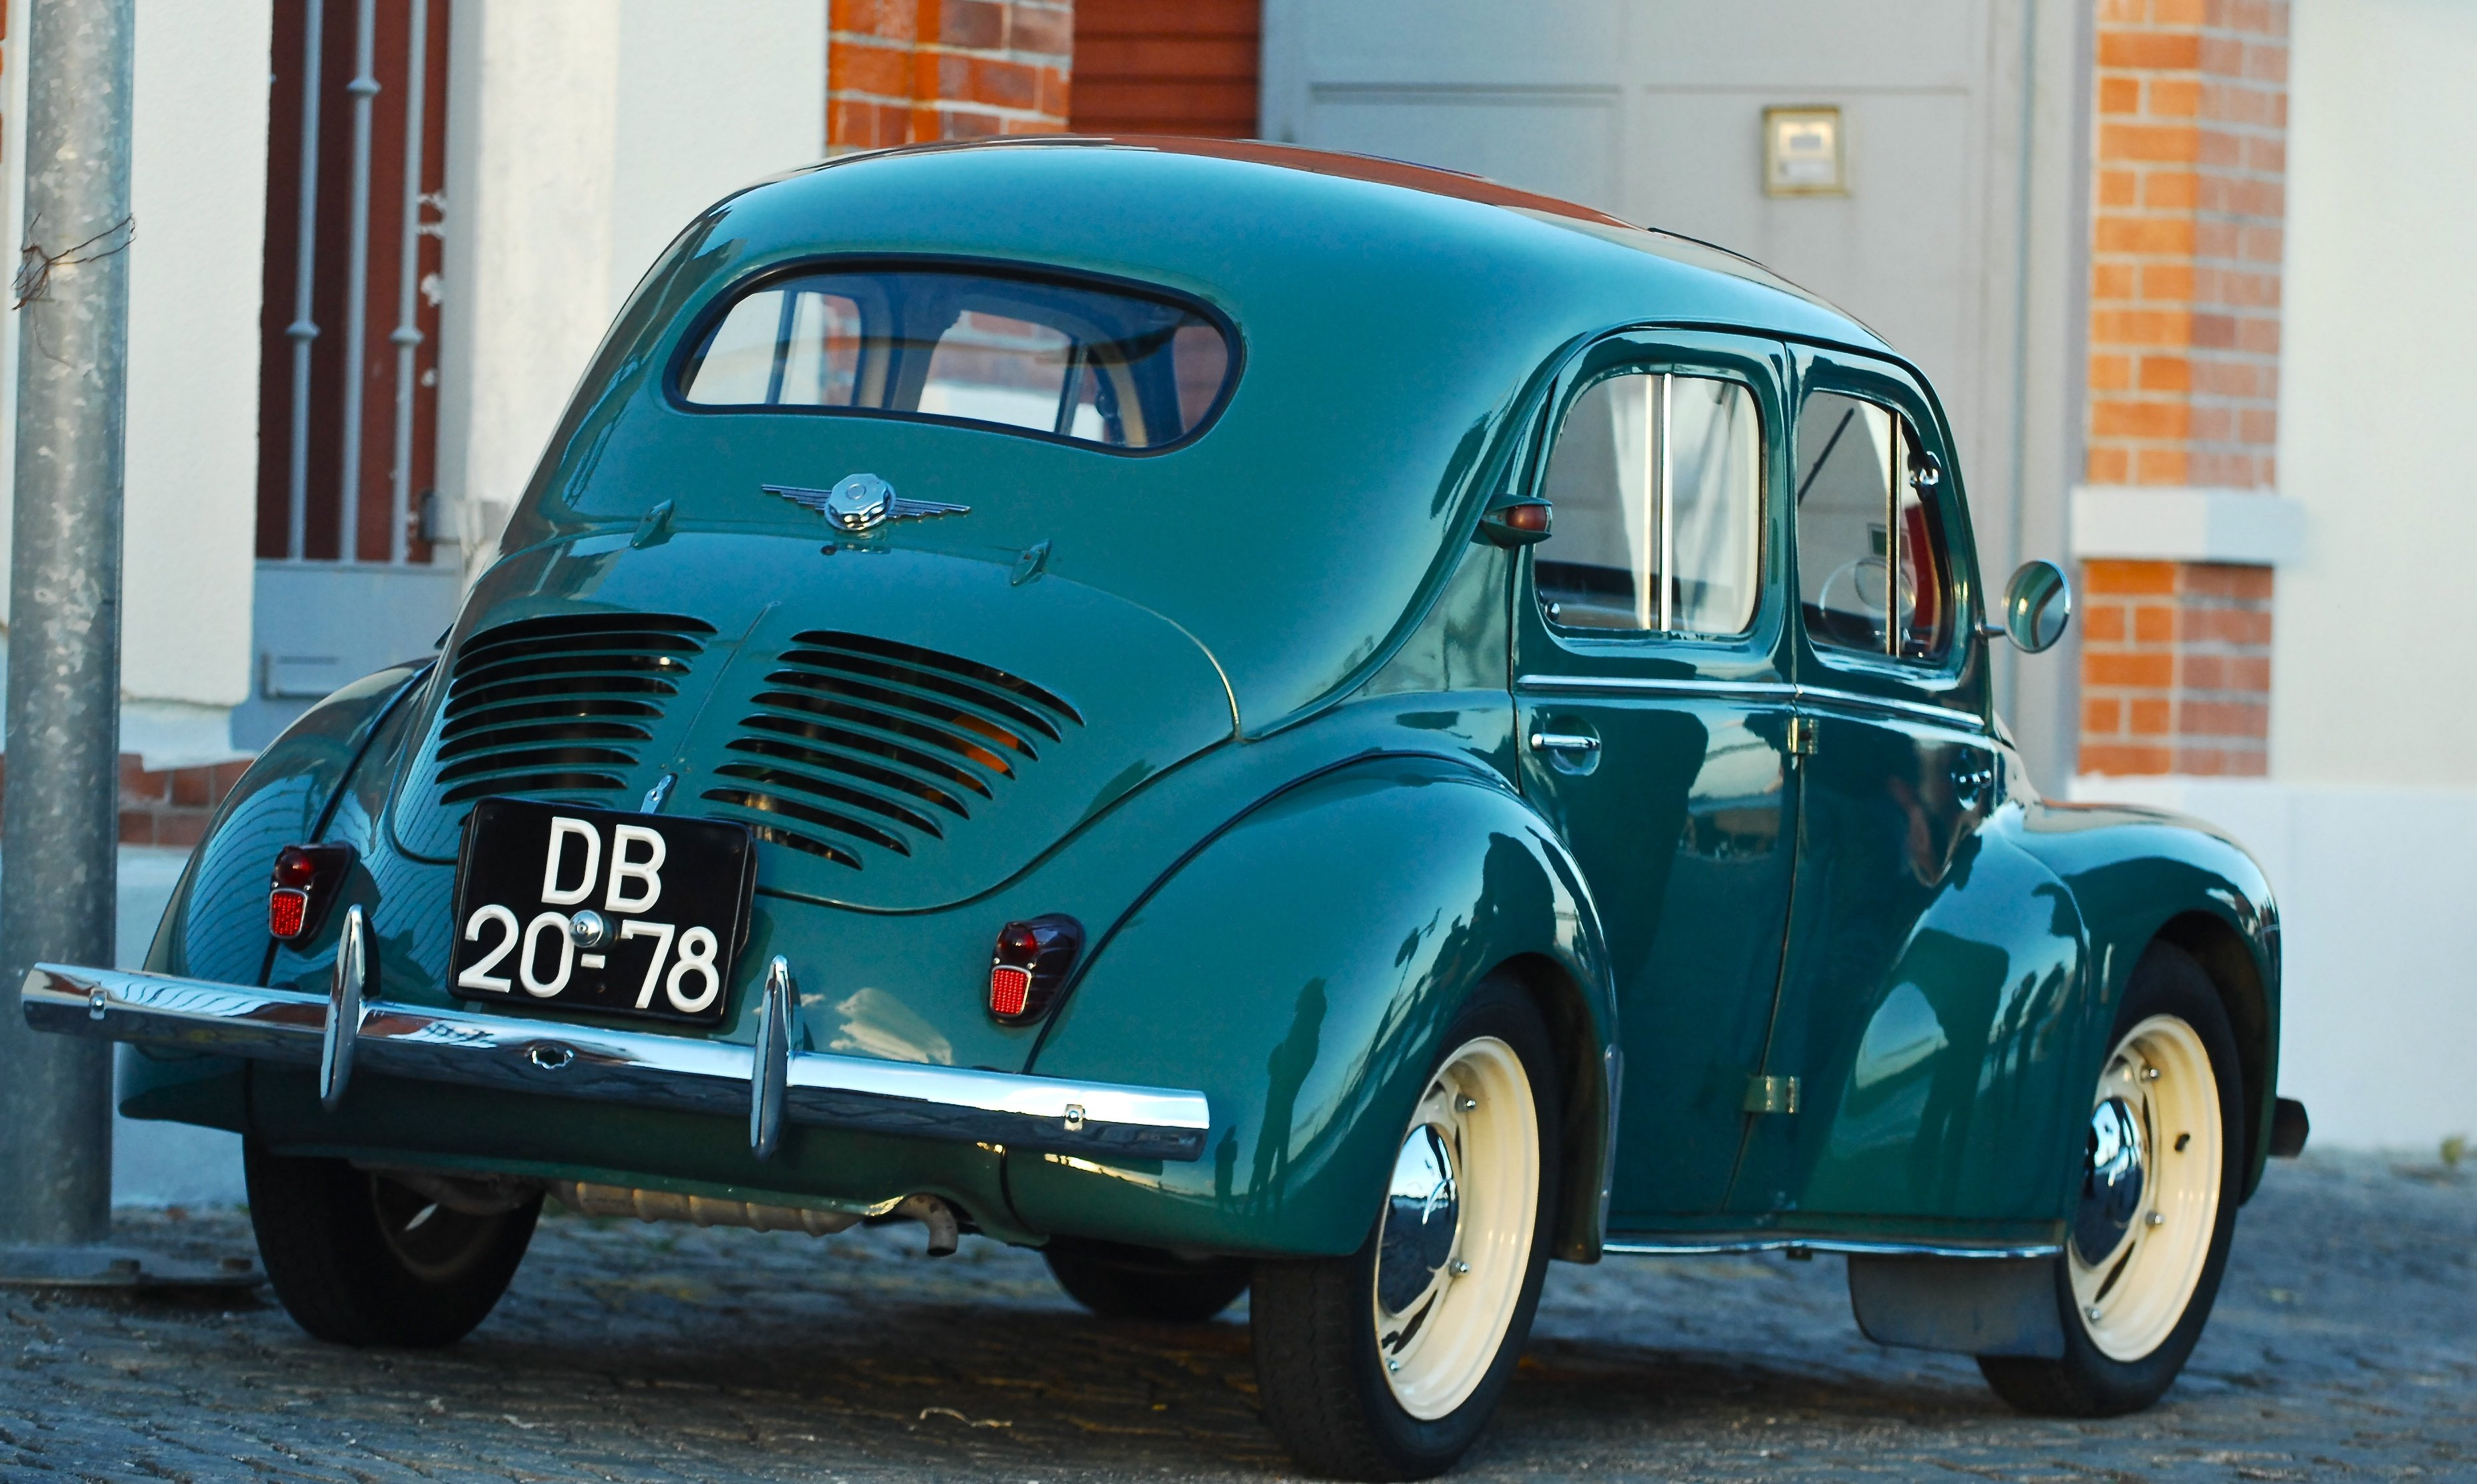 renault 4cv classic cars french wallpaper 3723x2231 593541 wallpaperup. Black Bedroom Furniture Sets. Home Design Ideas